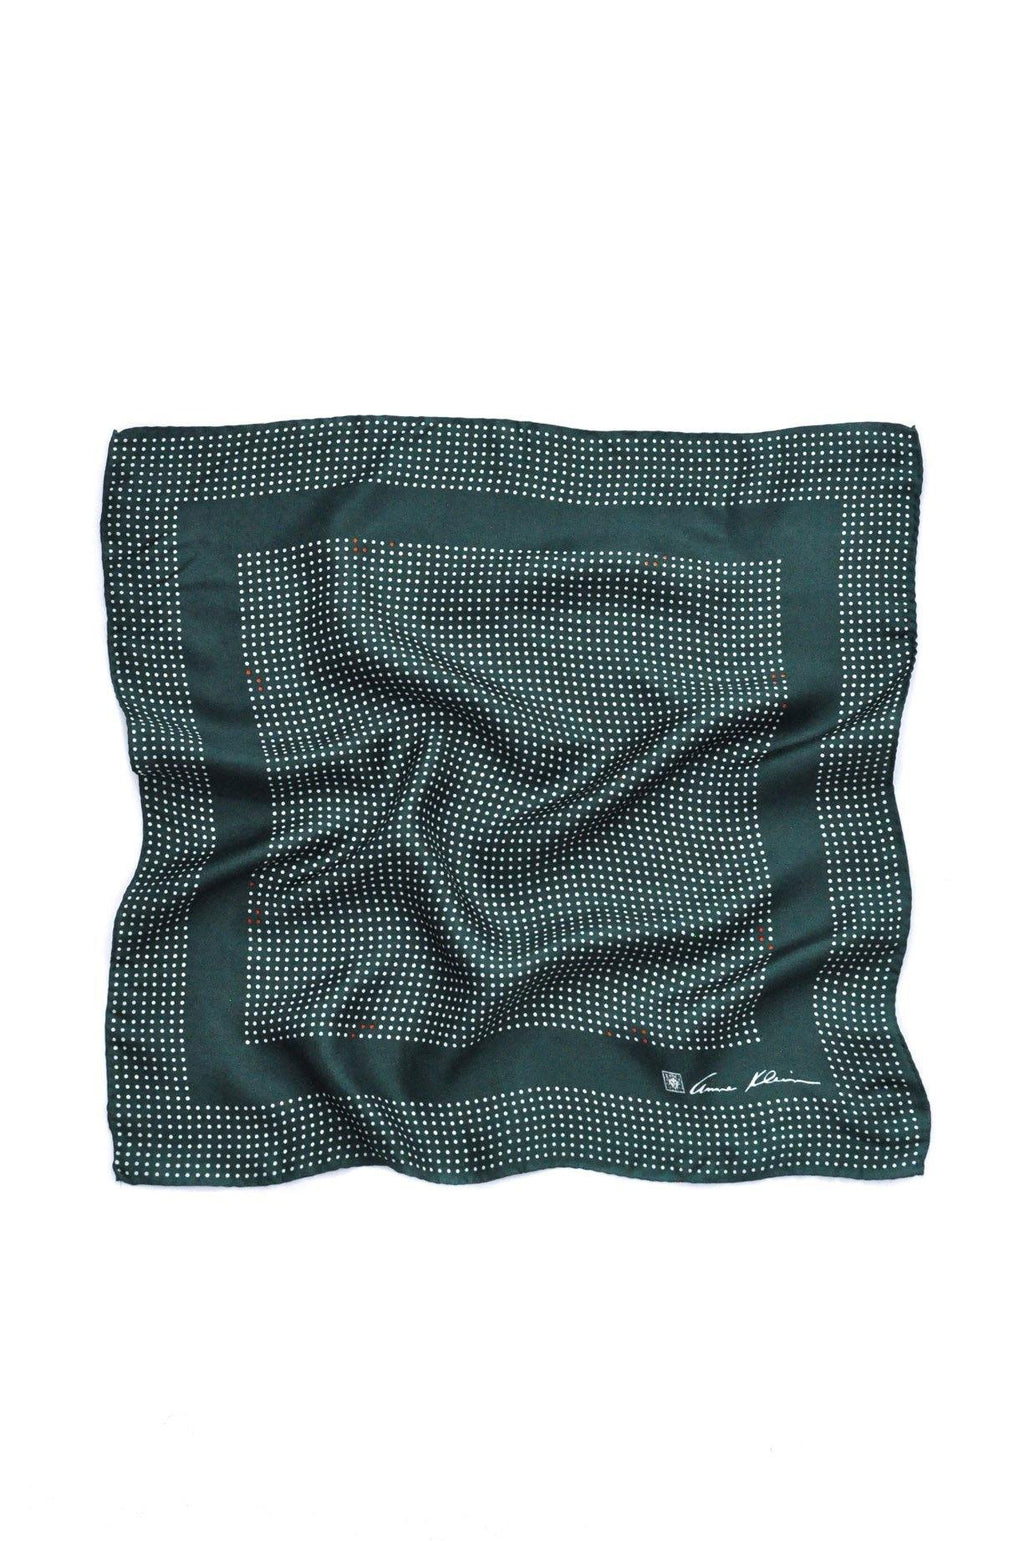 Emerald Green Polka Dot Square Scarf